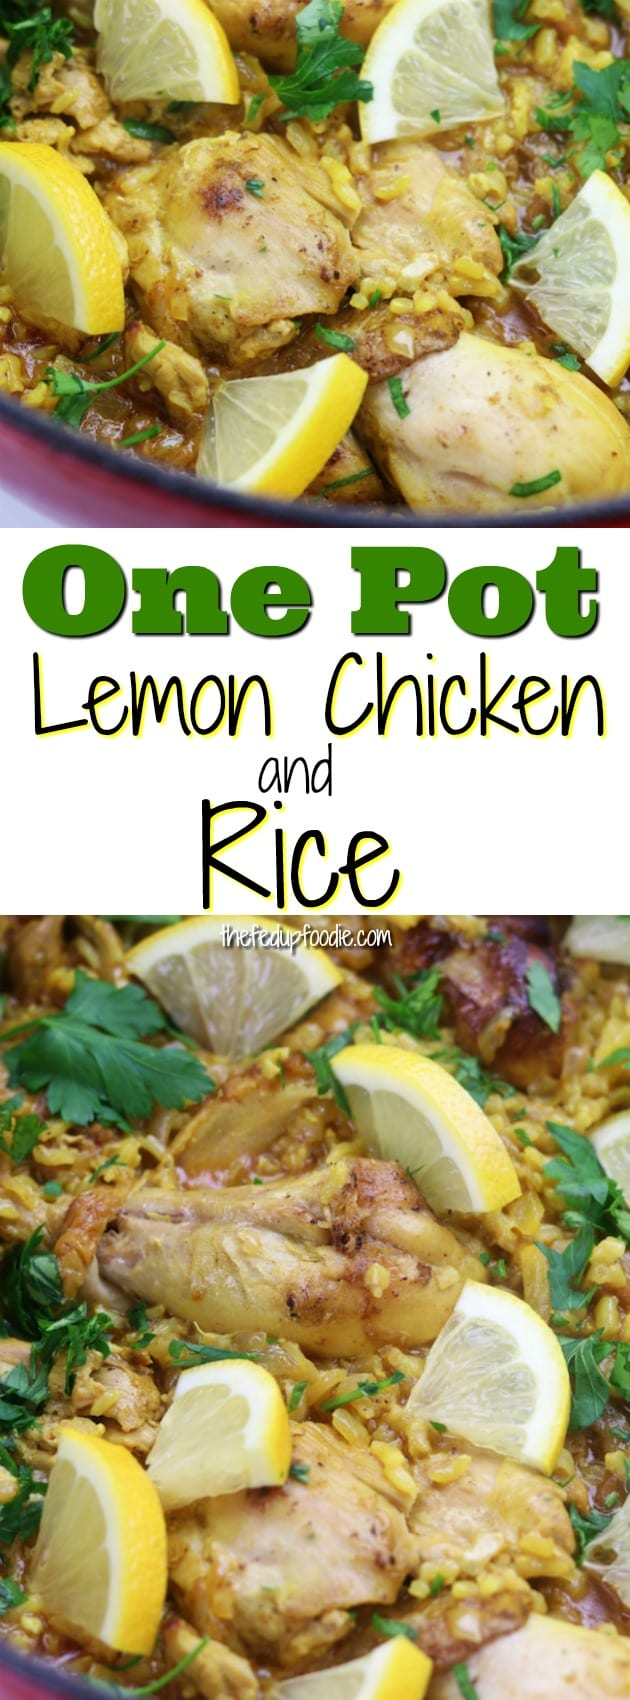 Fresh and aromatic, this One Pot Lemon Chicken and Rice is bound to become your new favorite comfort dinner with buttery chicken, brown rice and savory spices. So delicious and easy! #ChickenAndRiceRecipes #ChickenDinner https://www.thefedupfoodie.com